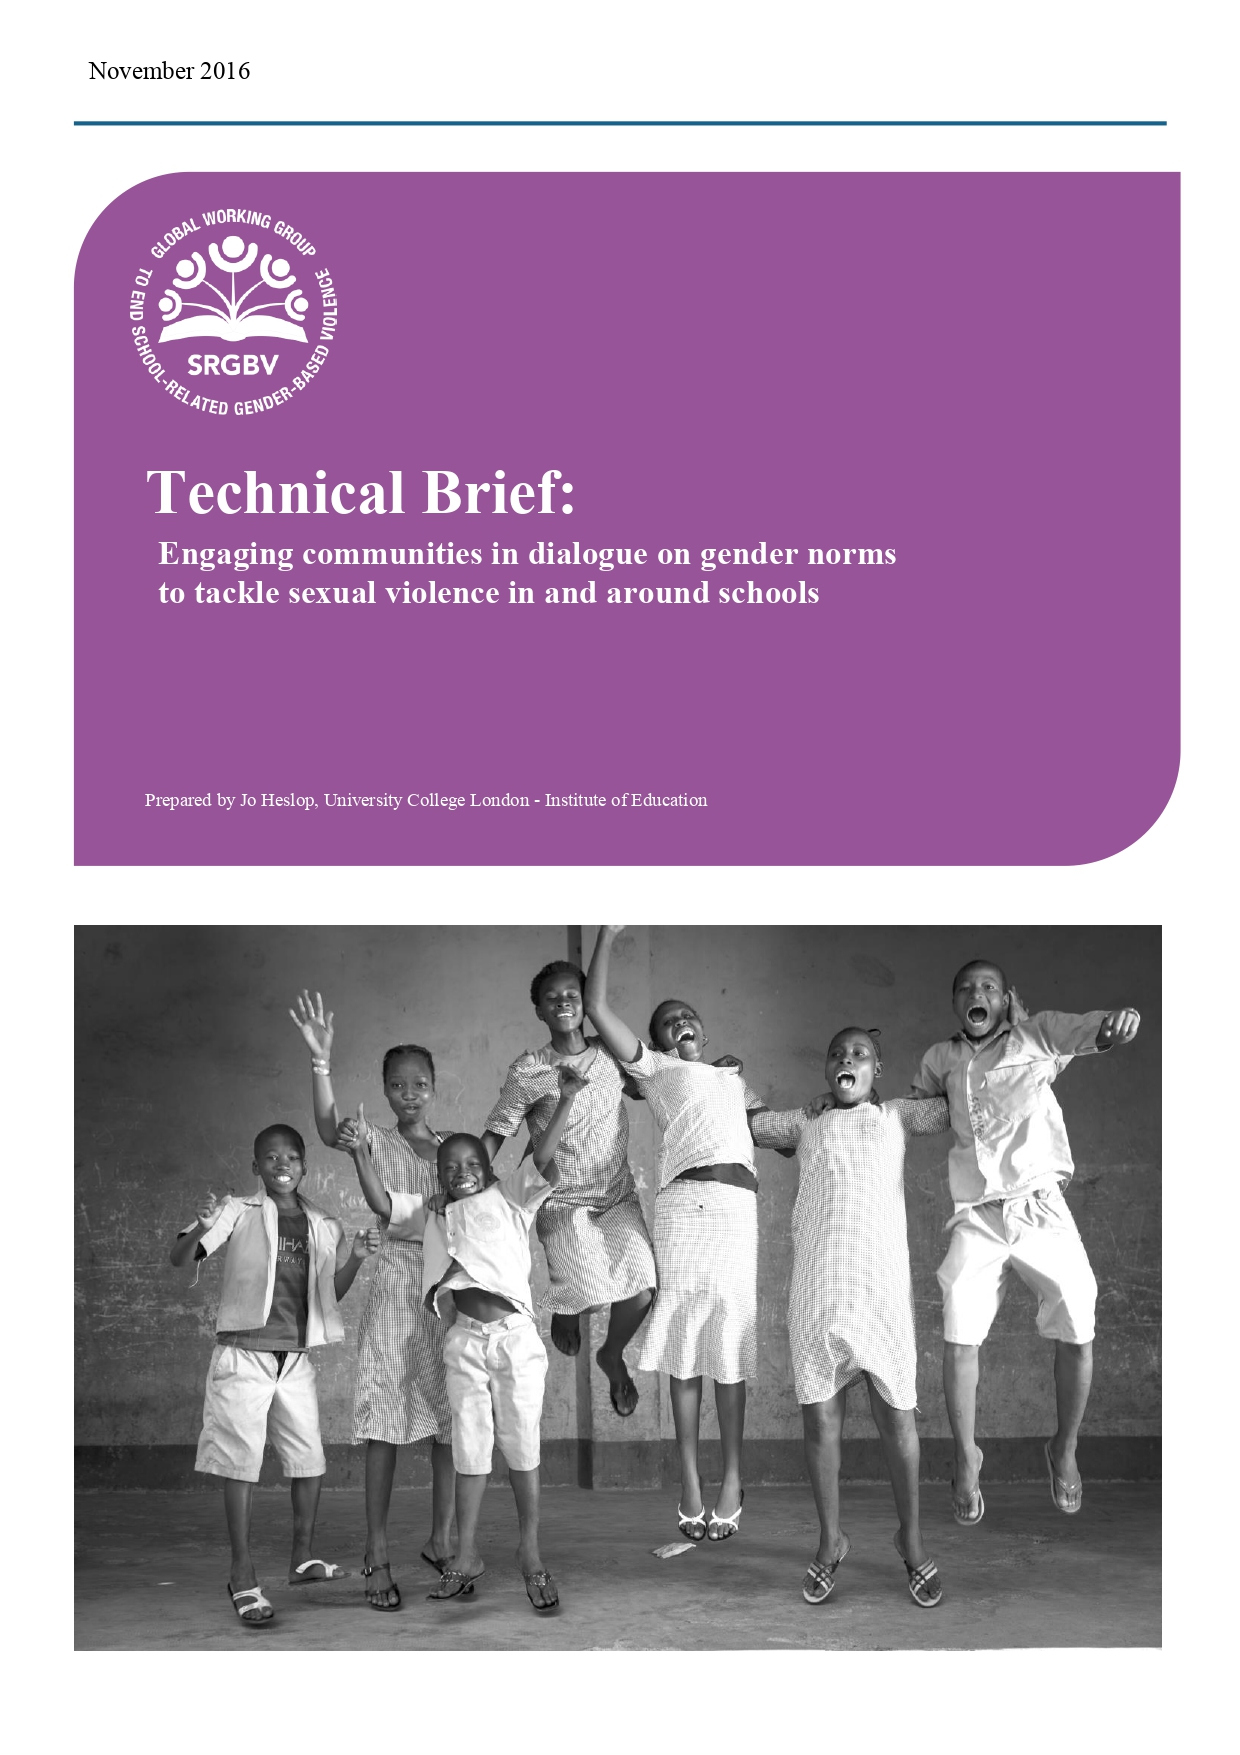 Technical Brief: Engaging communities in dialogue on gender norms to tackle sexual violence in and around schools